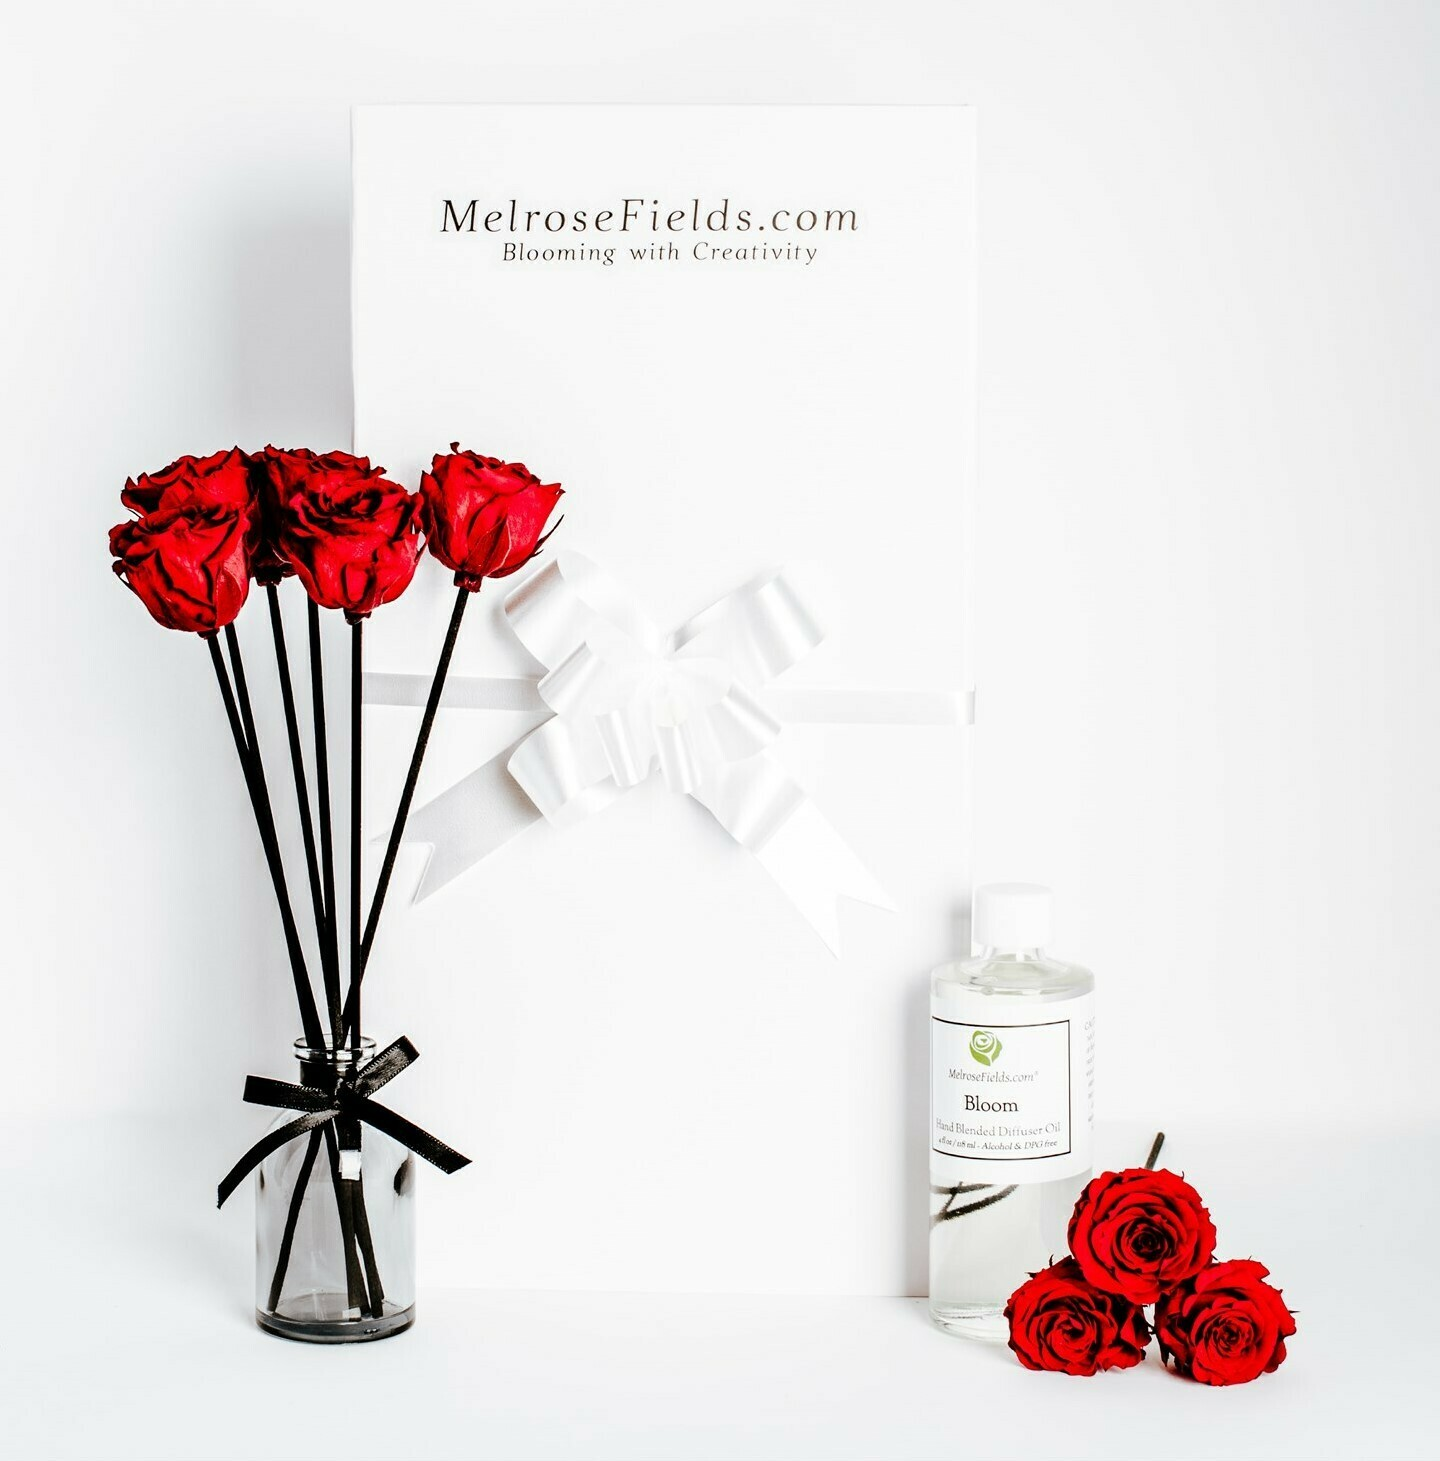 MelroseFields Mini Red Rose Reed Diffuser Kit